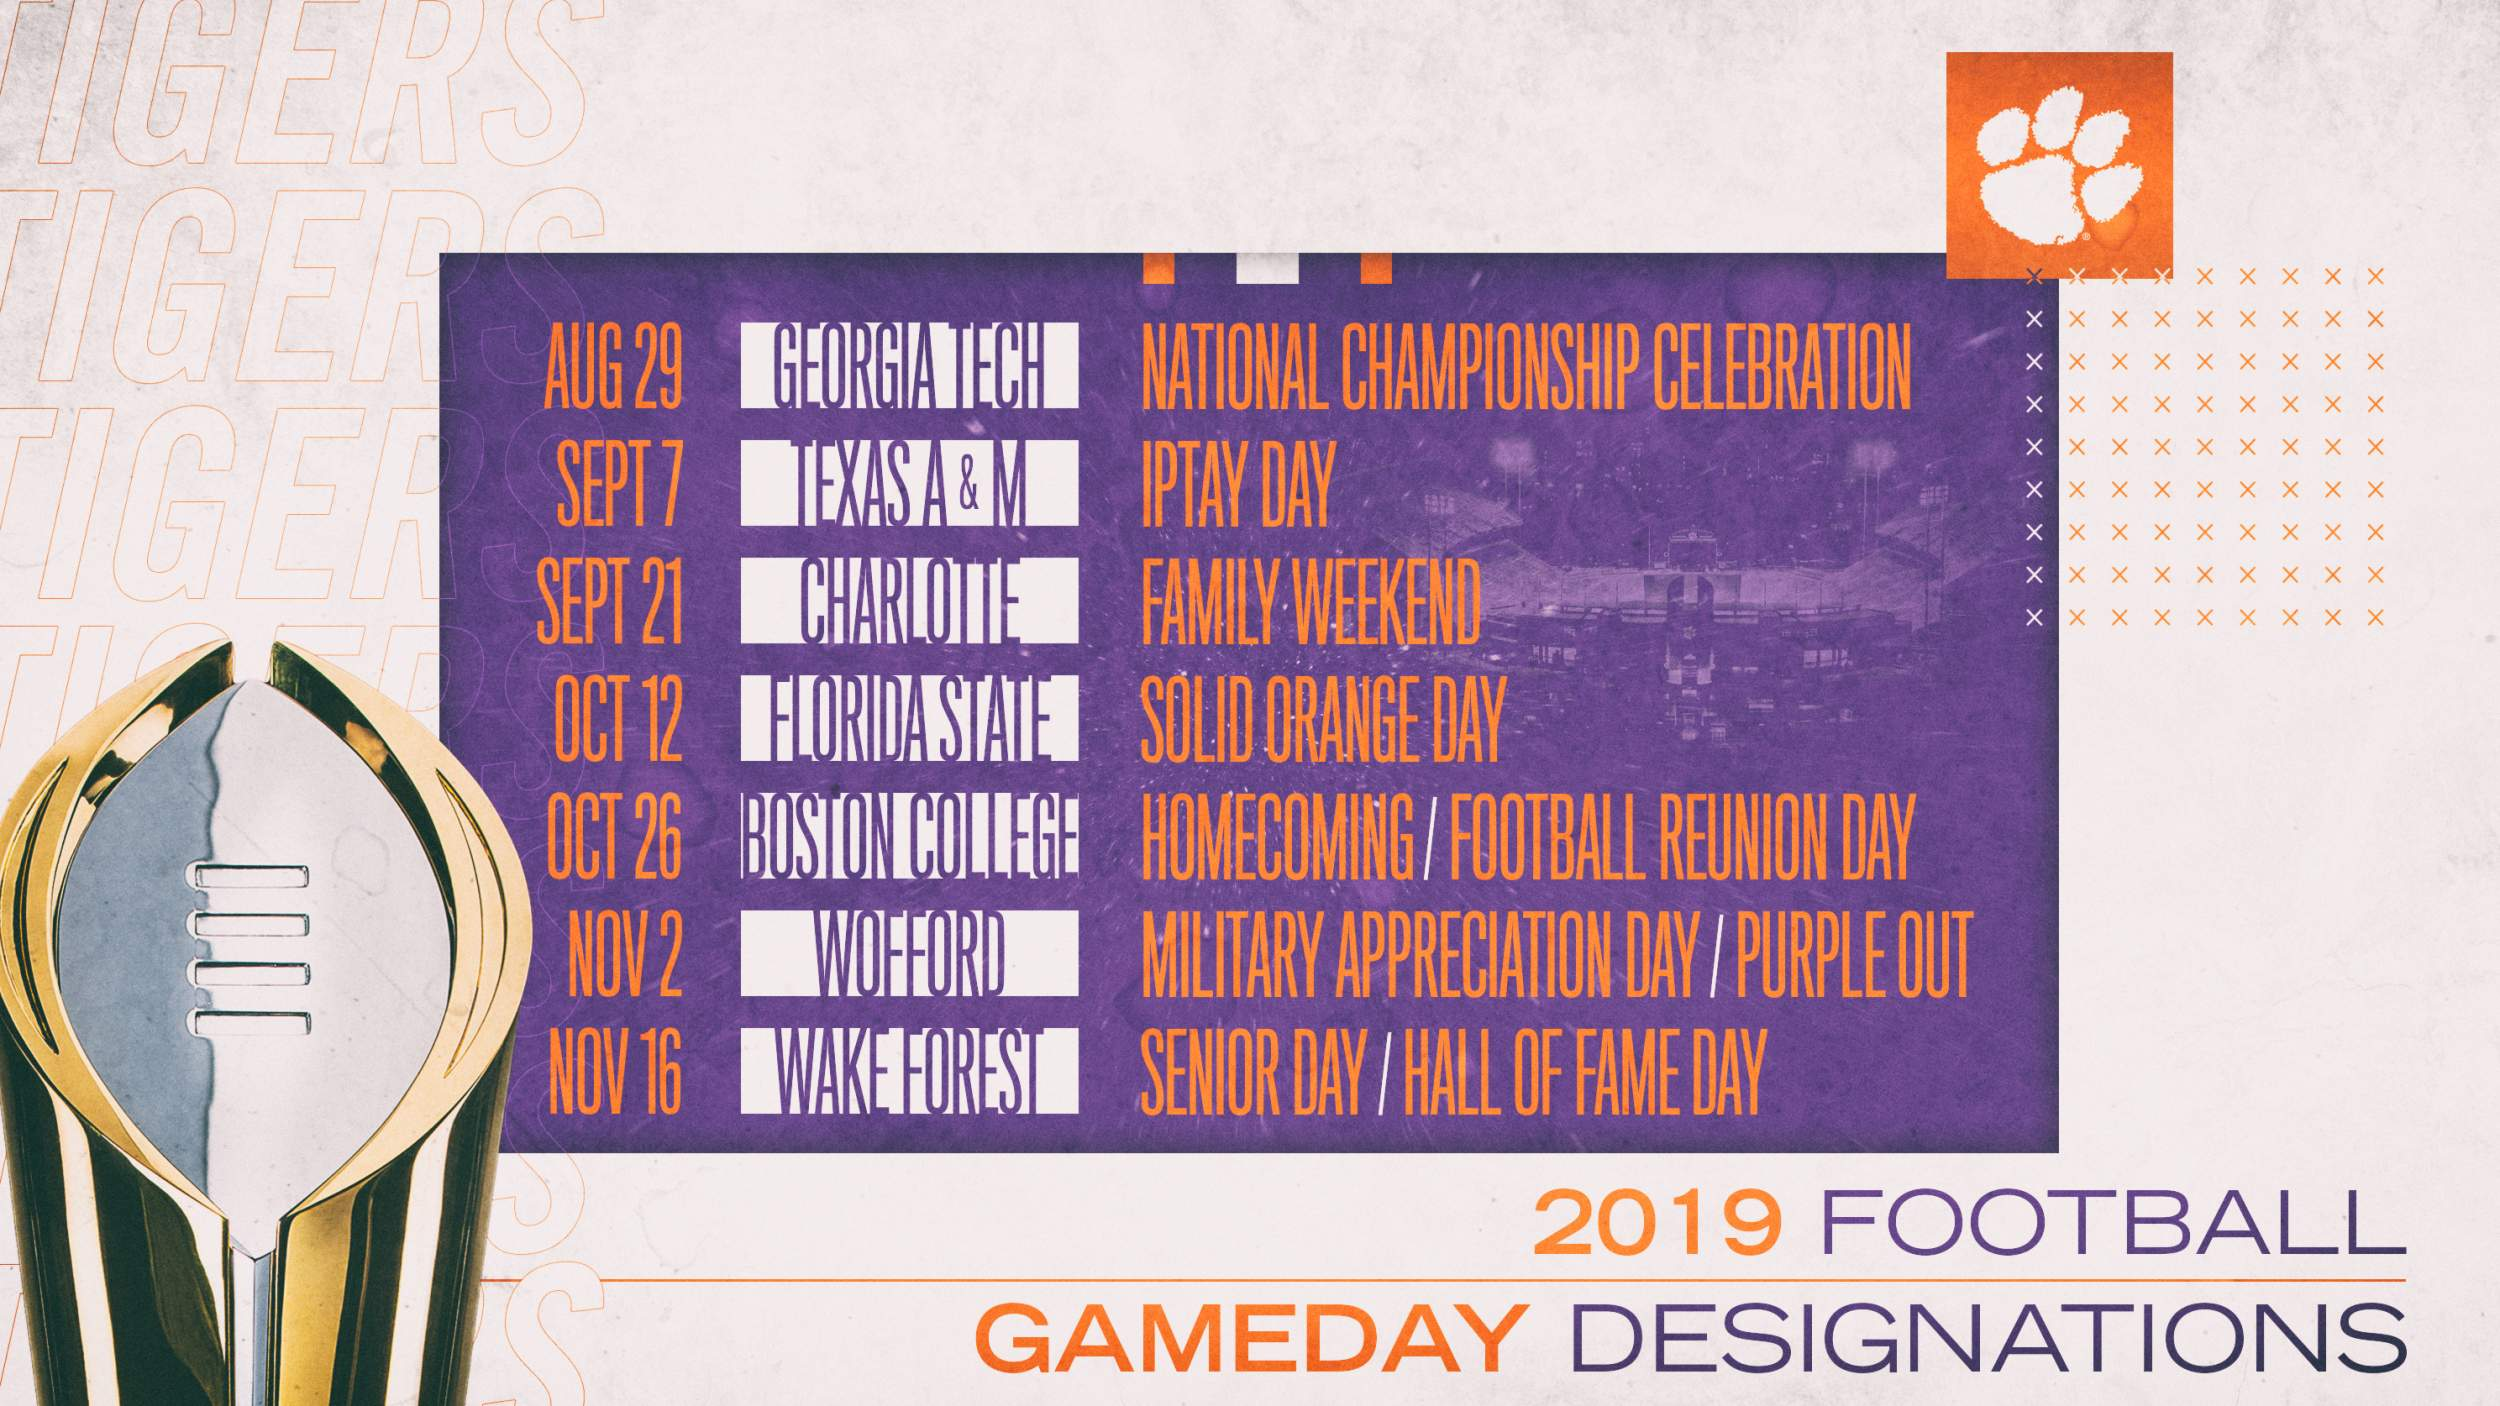 Clemson Calendar 2020 Clemson Announces 2019 Football Gameday Designations – Clemson